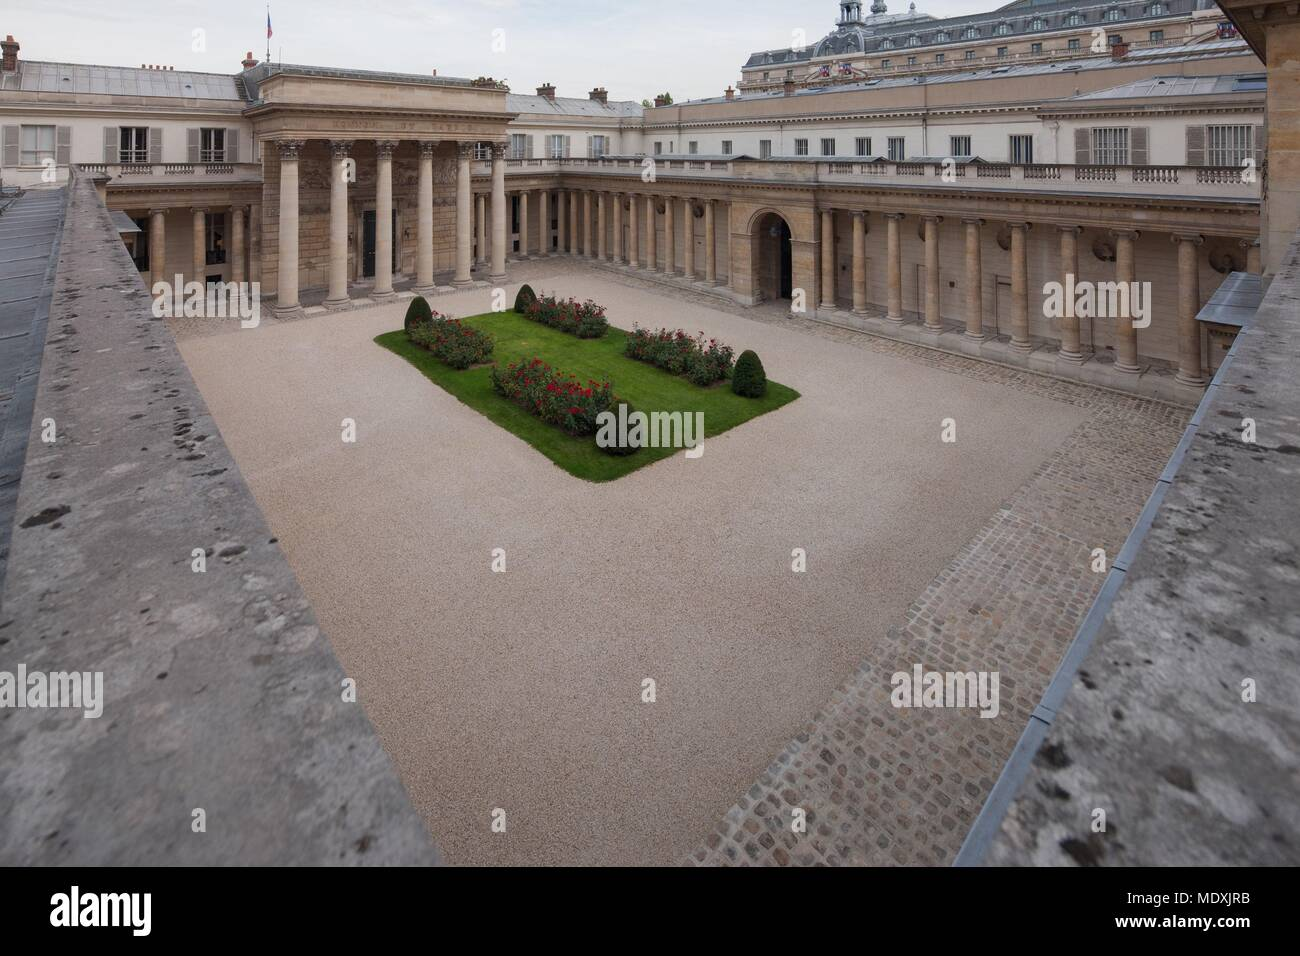 Salm Karlsruhe Court Of Honor High Resolution Stock Photography And Images - Alamy